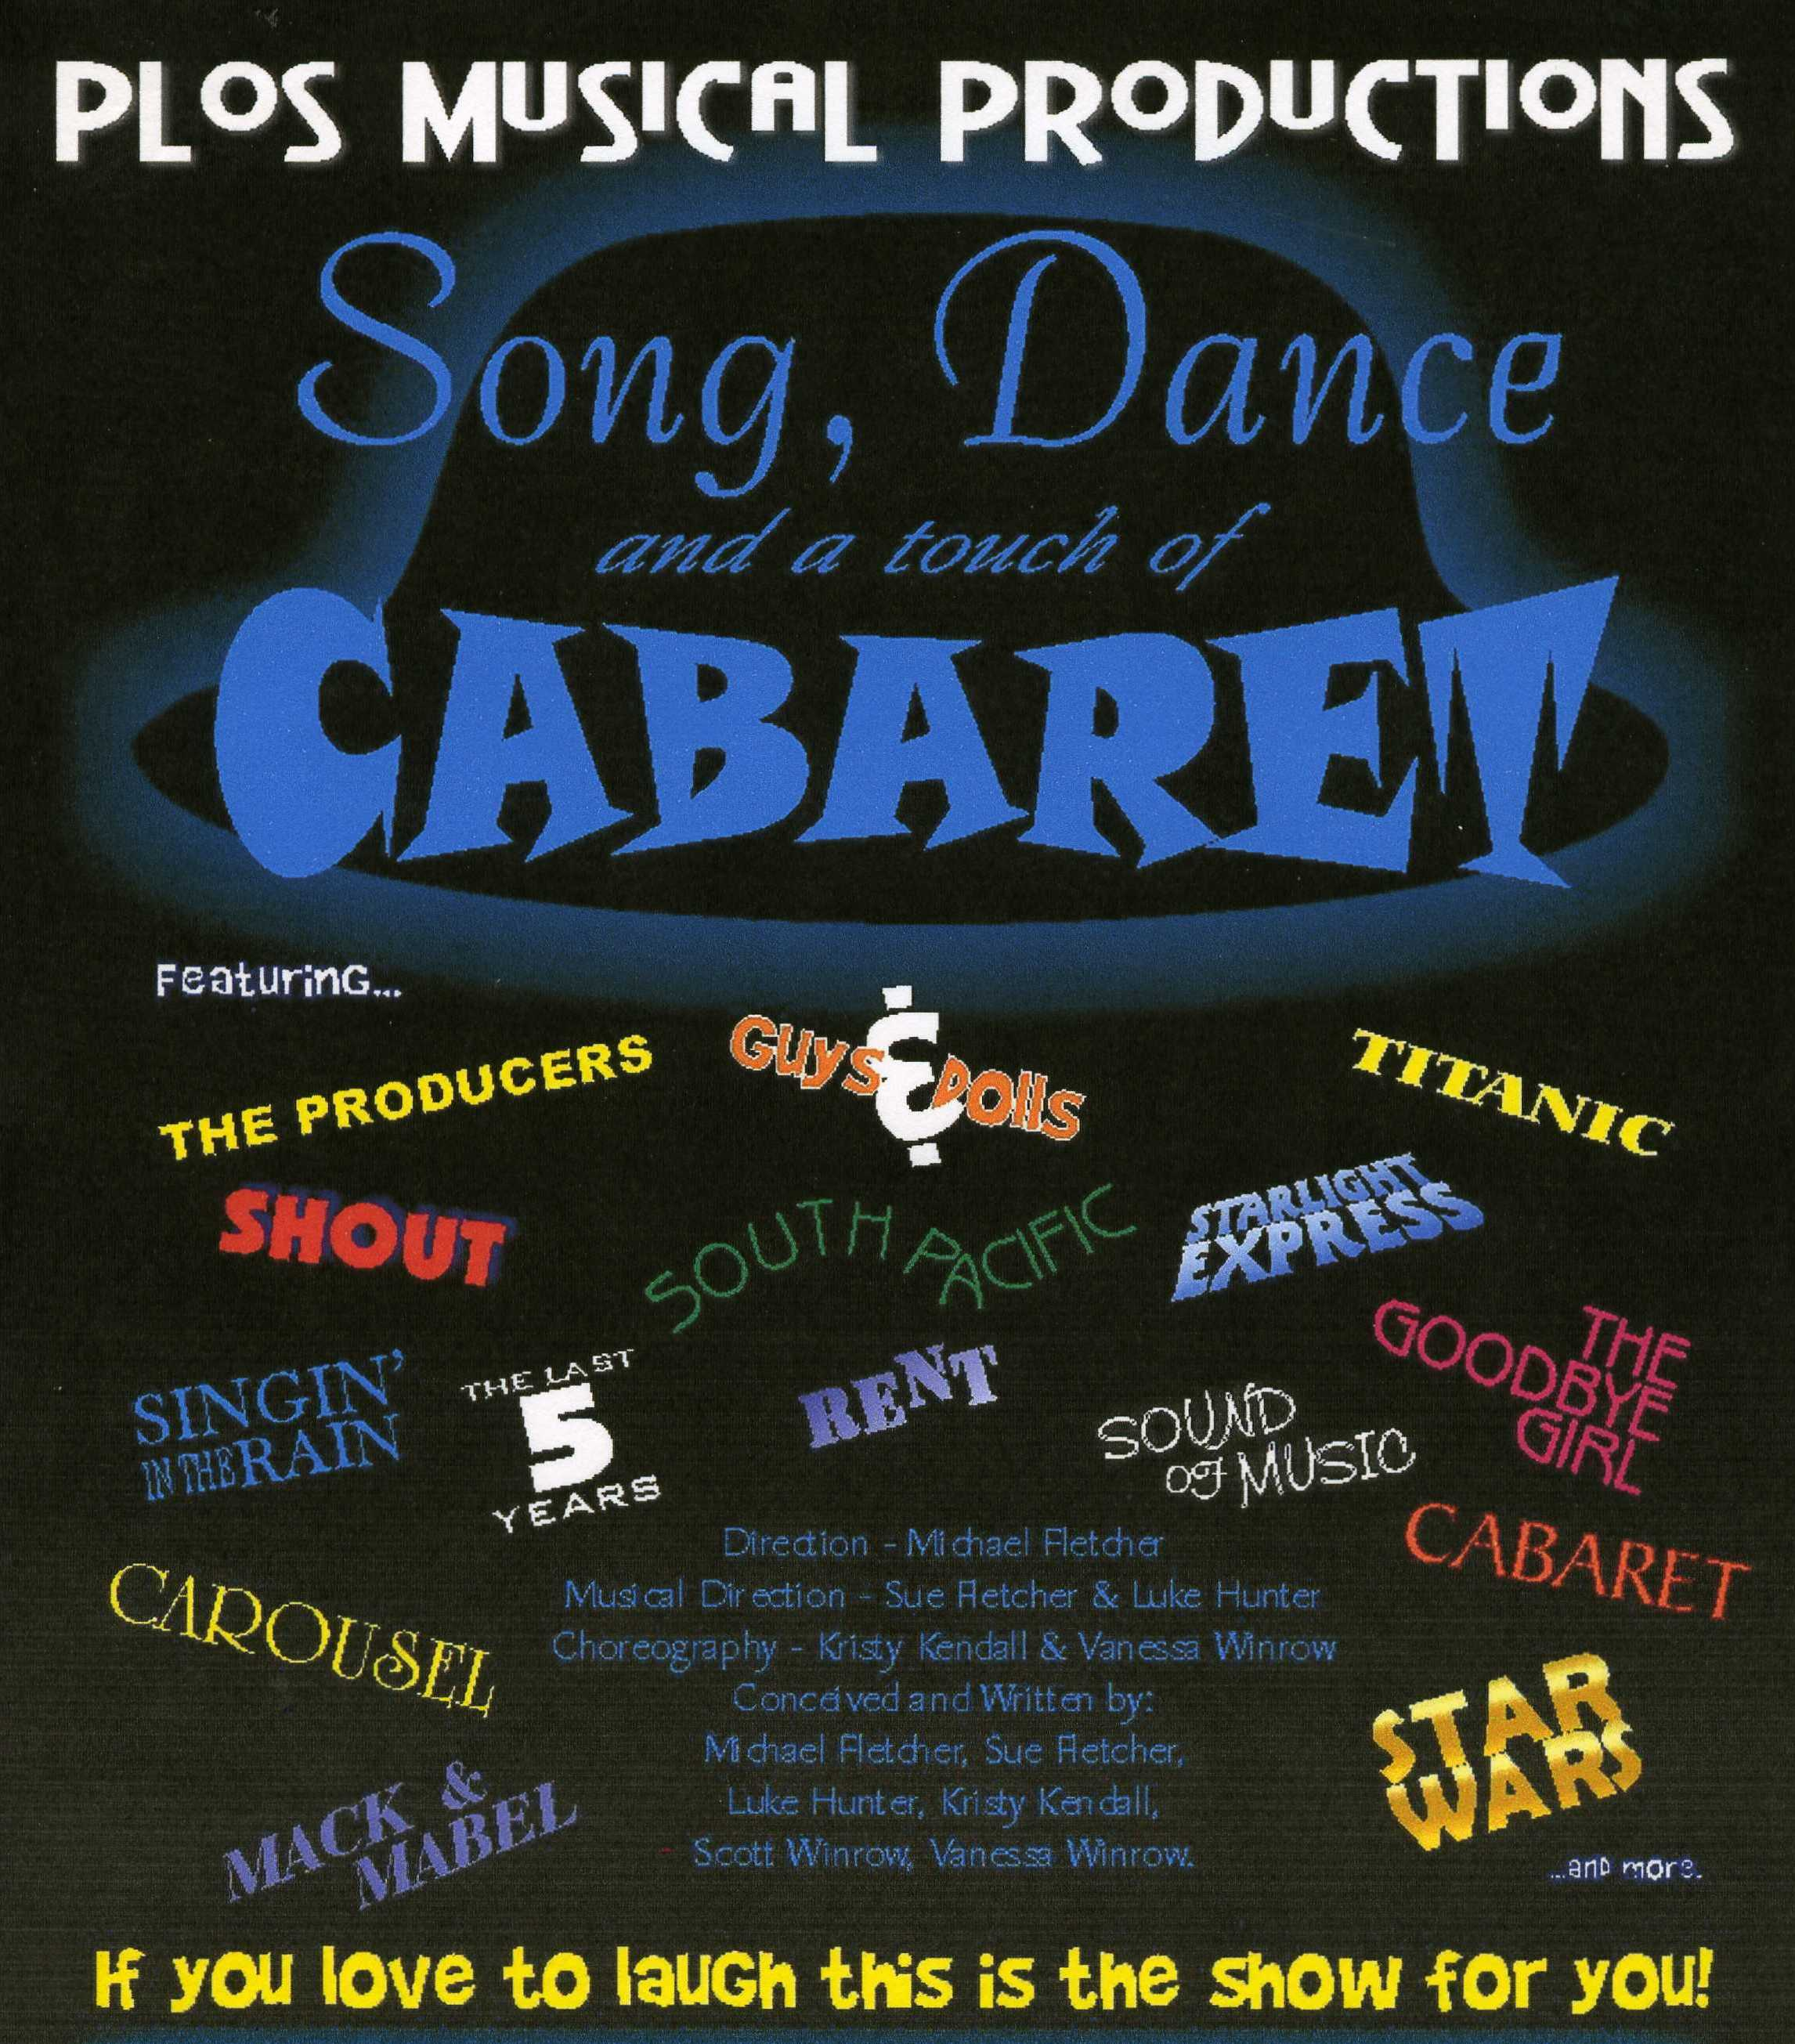 Song Dance and a touch of Cabaret